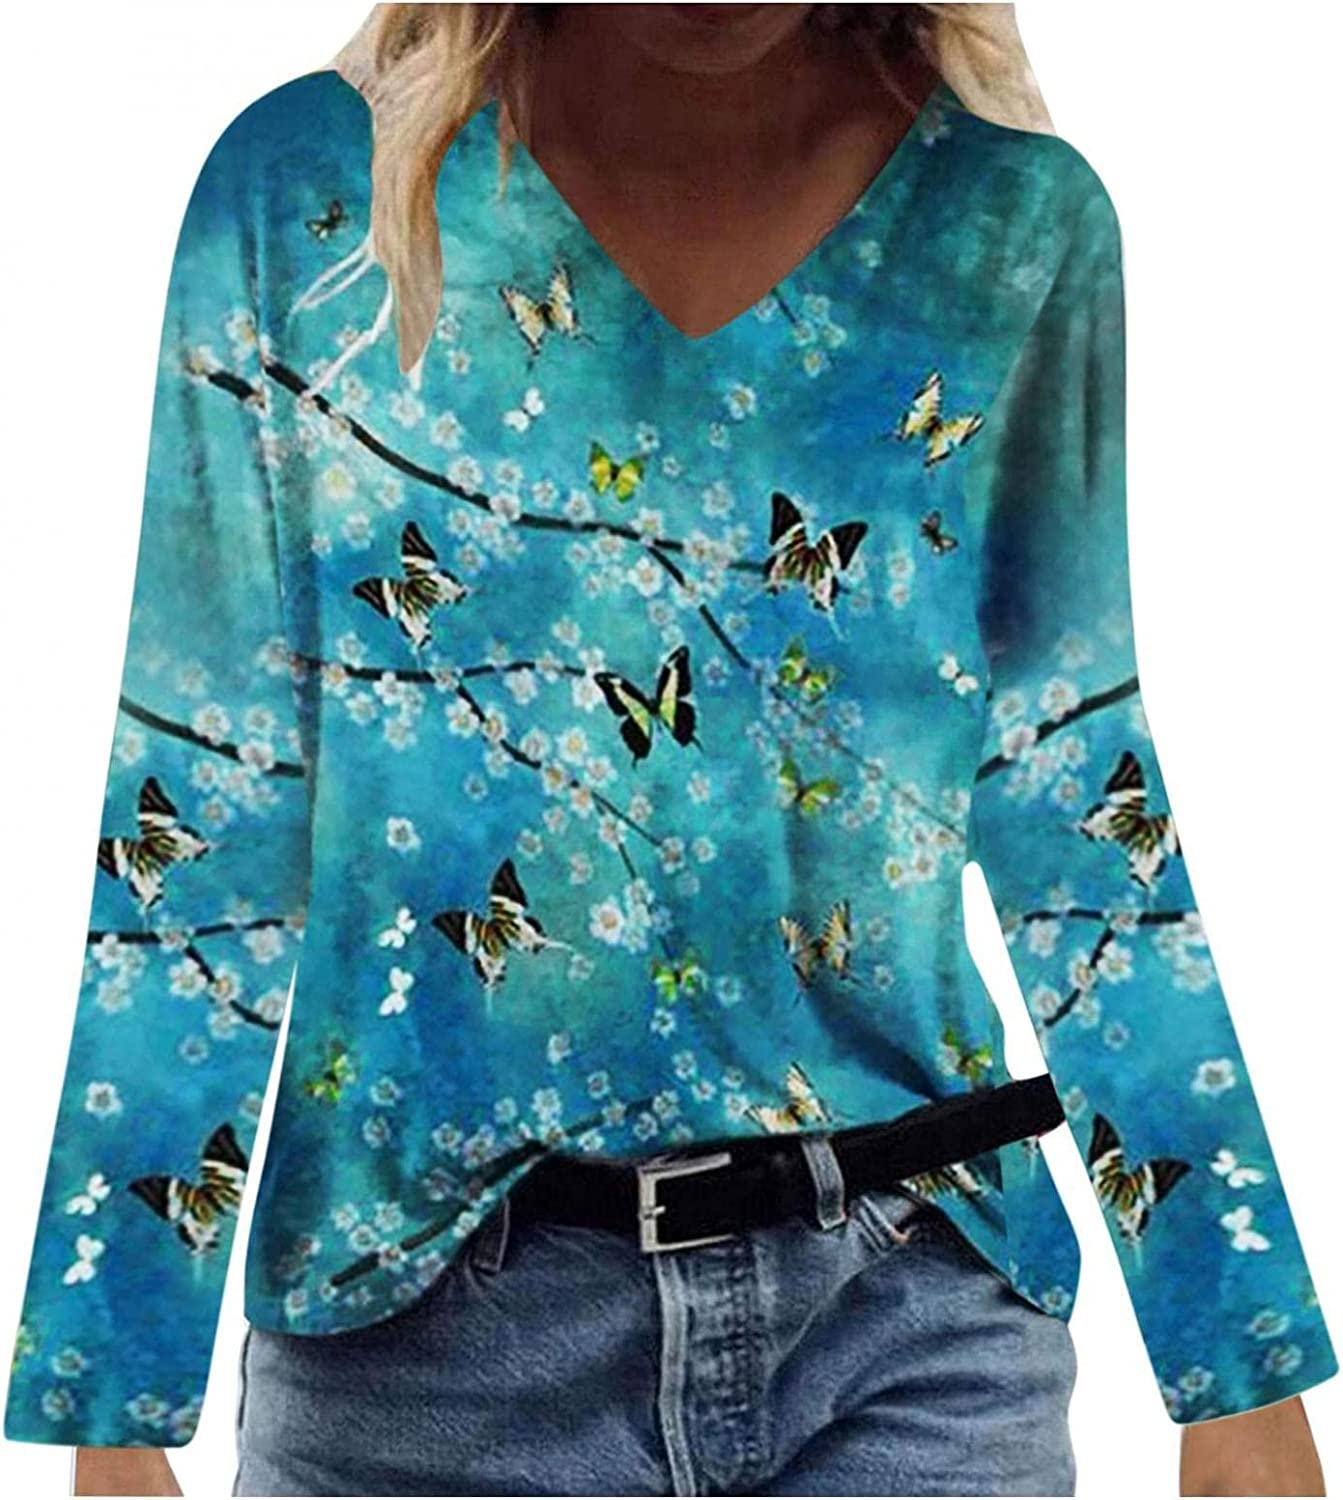 Leirke Flowy Shirts for Women, Summer Trendy Long Sleeve Casual Flowers Print Tunic Tops Comfy Soft V-Neck Blouses